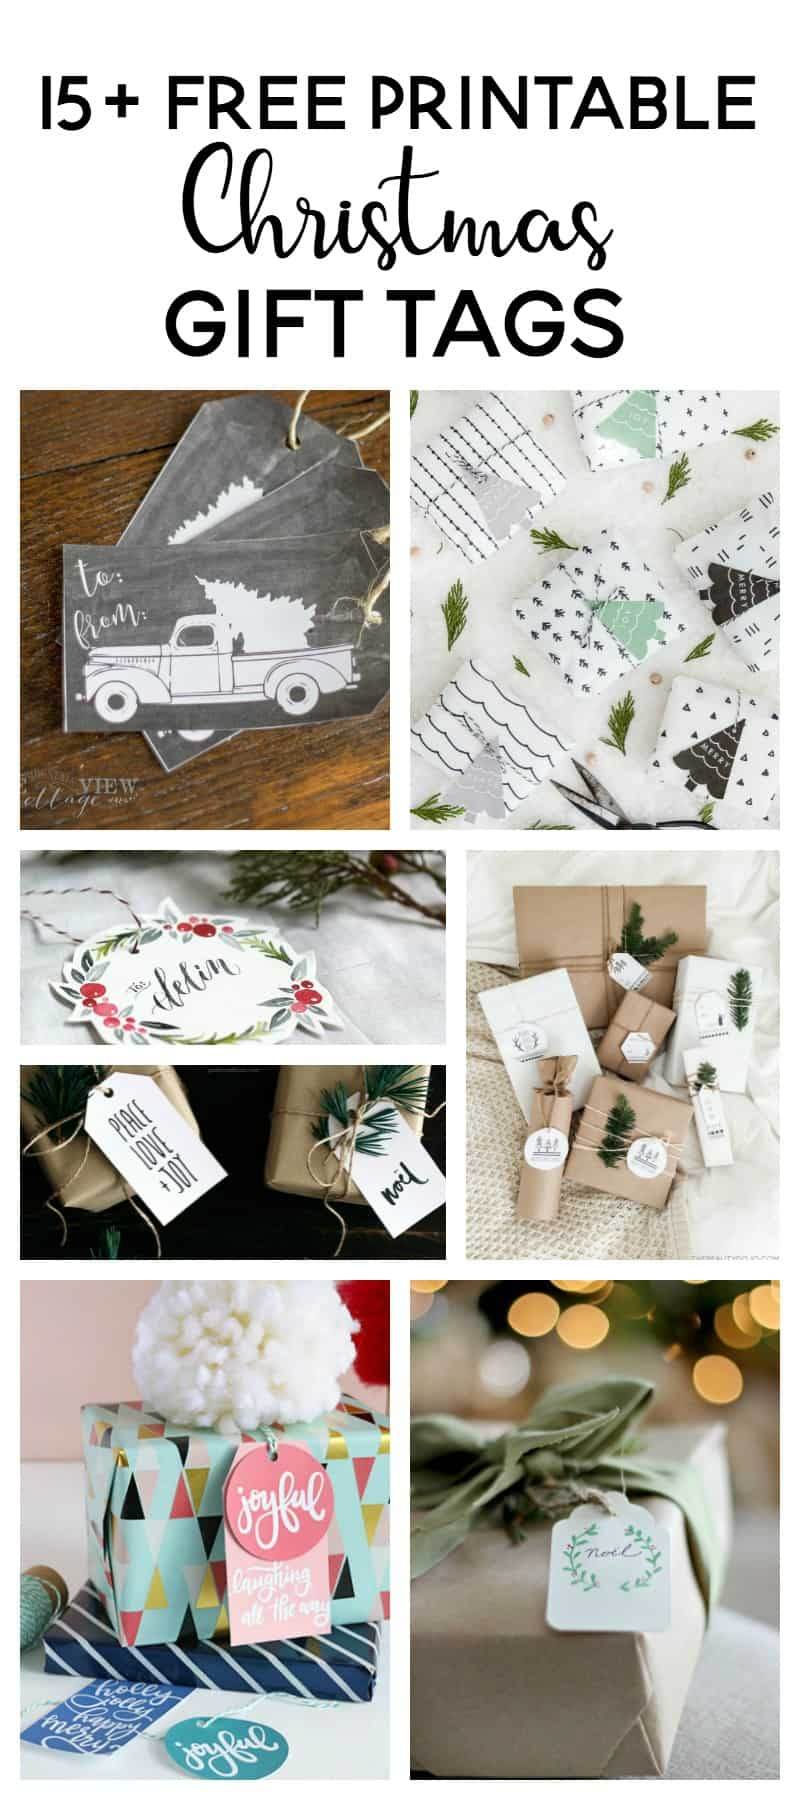 free printable christmas gift tags | christmas gifts | christmas crafts  | christmas decor diy | gift tags christmas | gift tags diy | gifts tags printable | free printables | free christmas printables | diy gift tags